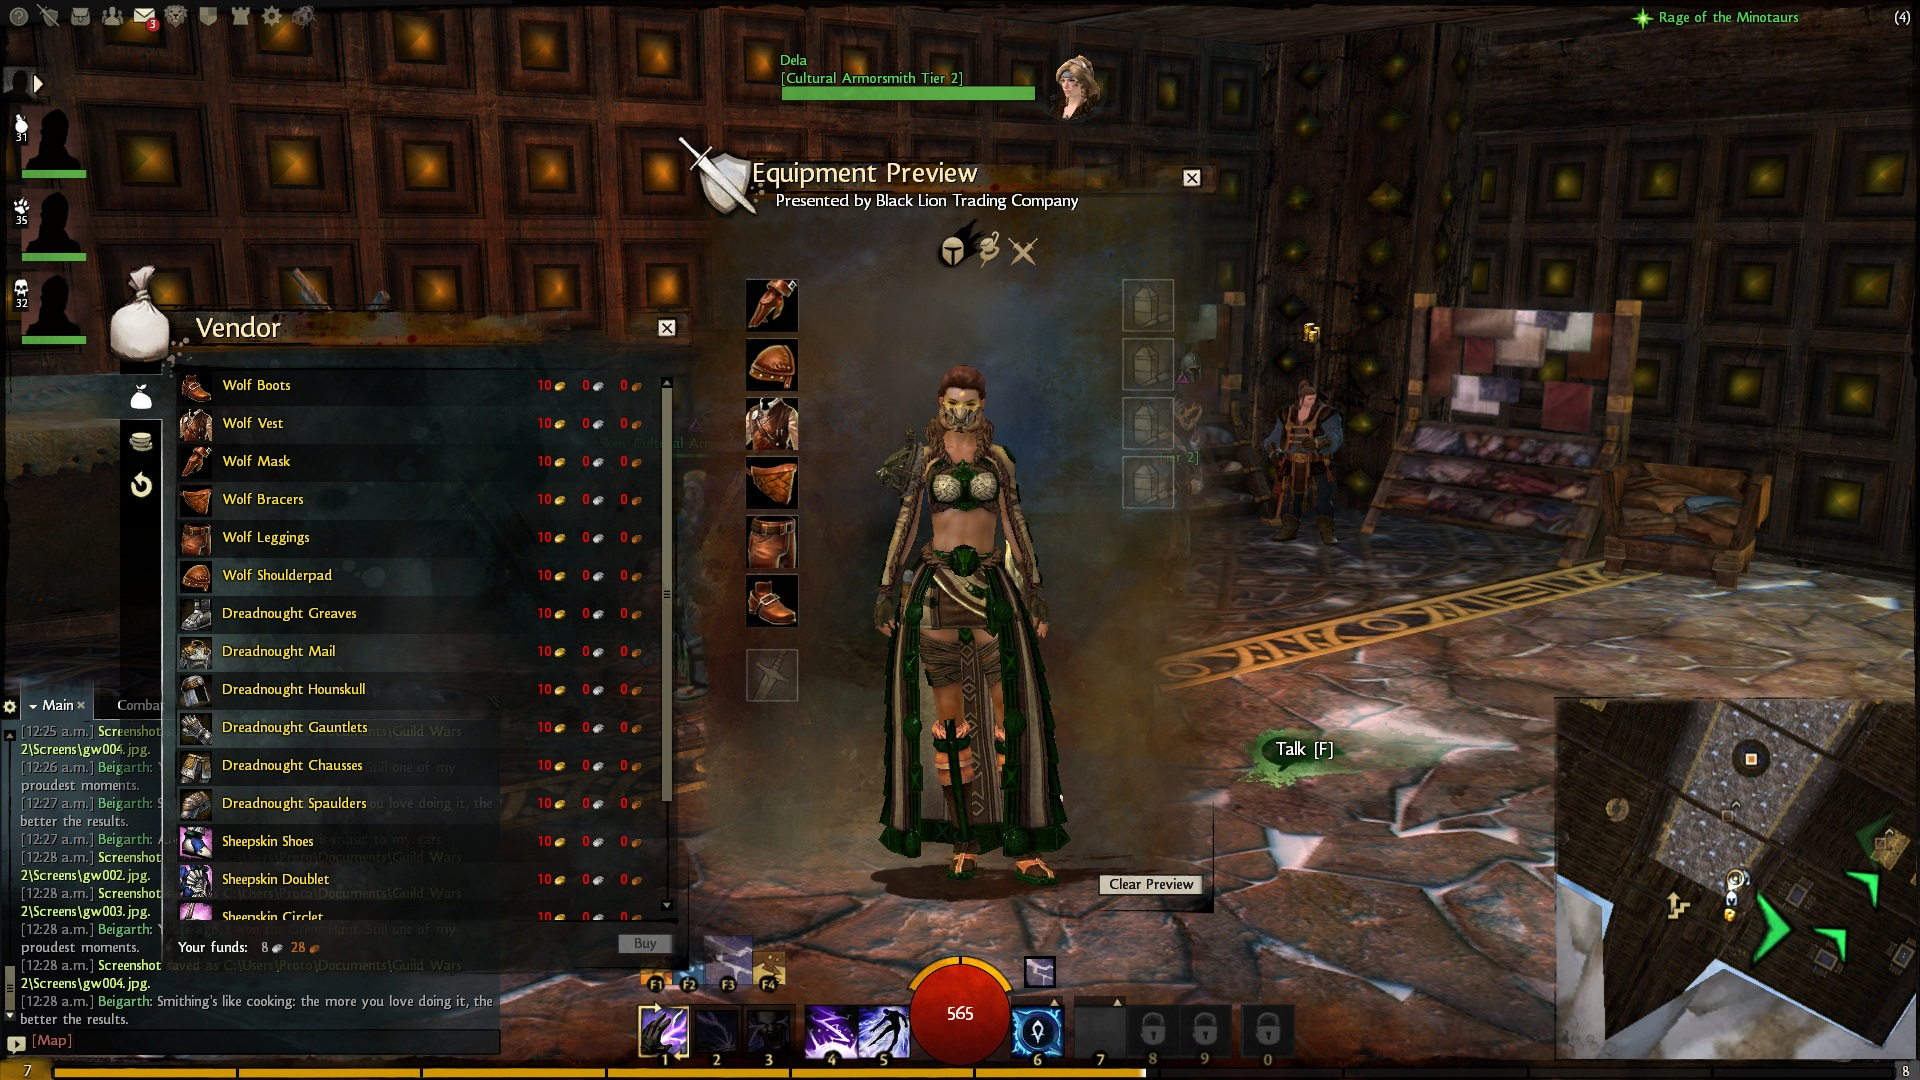 arelian games link deleted videomedia wars guild